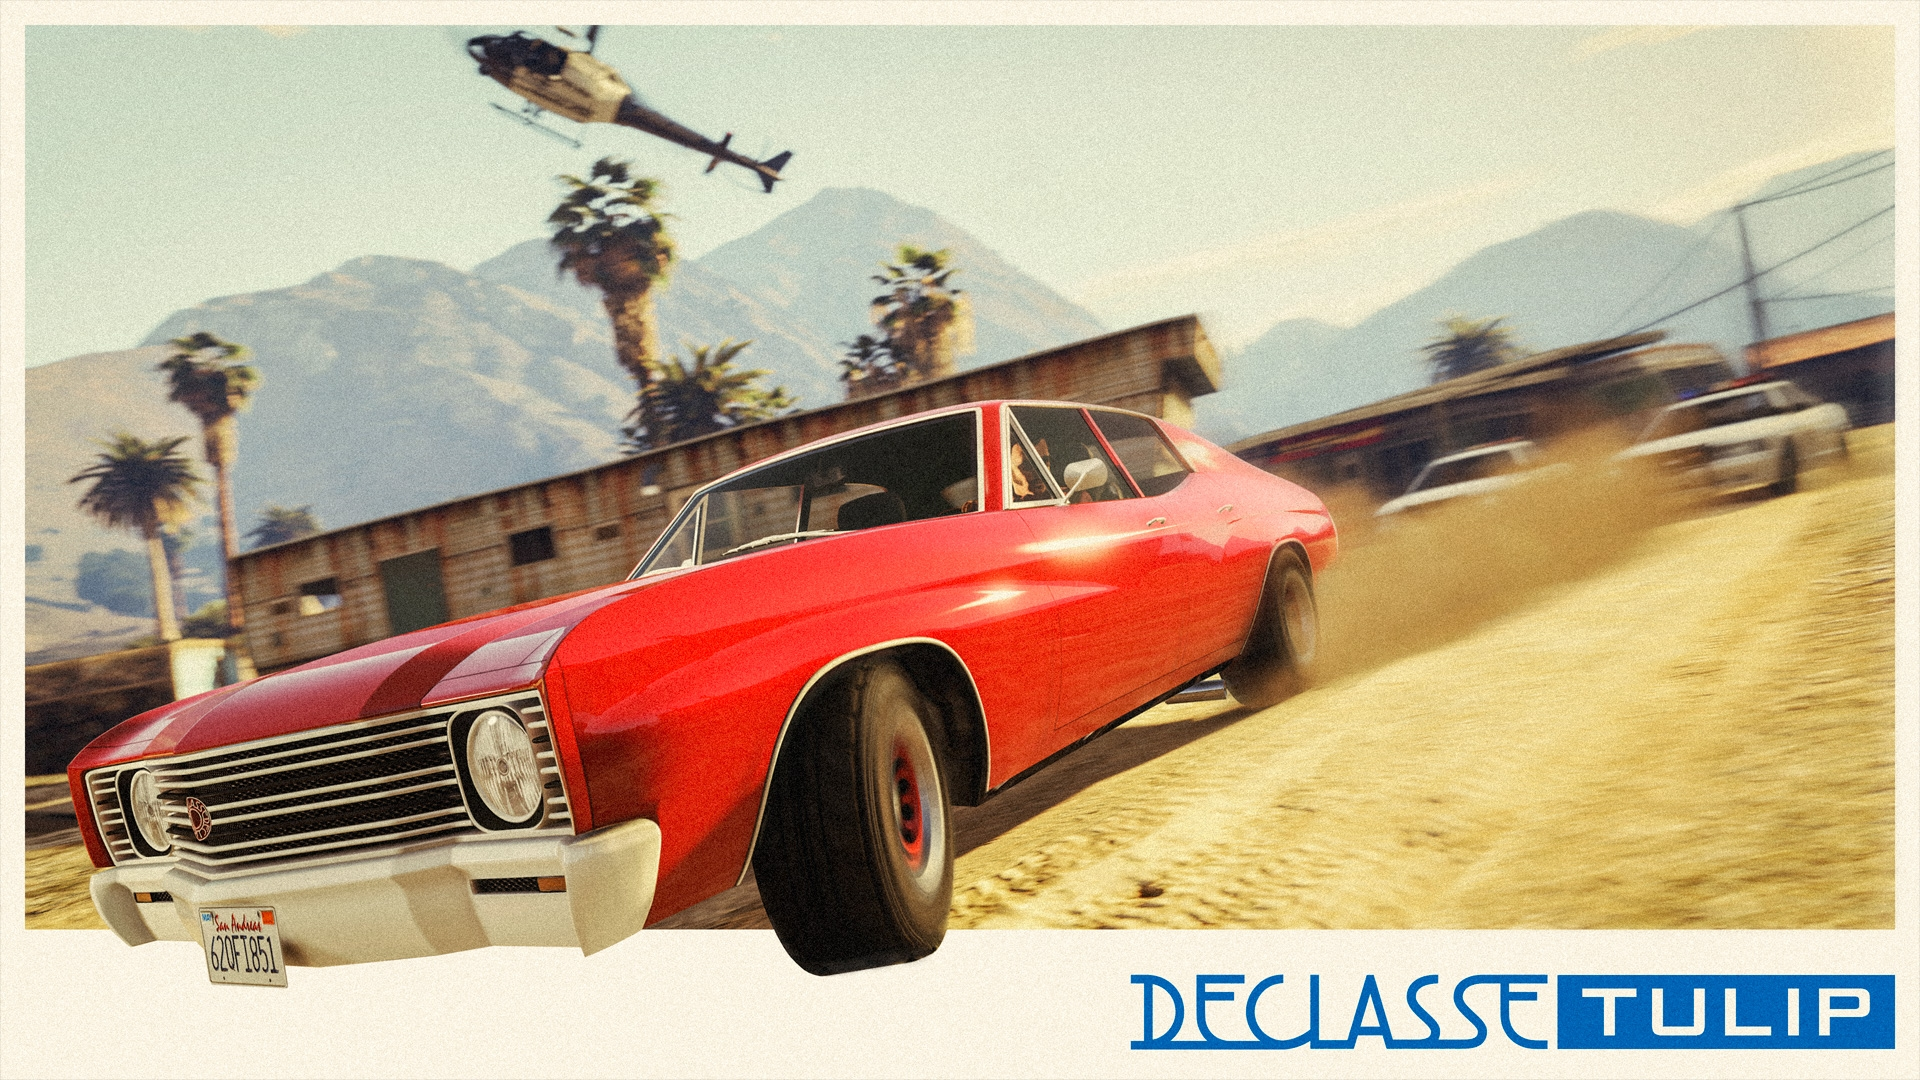 GTA Online: New Declasse Tulip Muscle Car